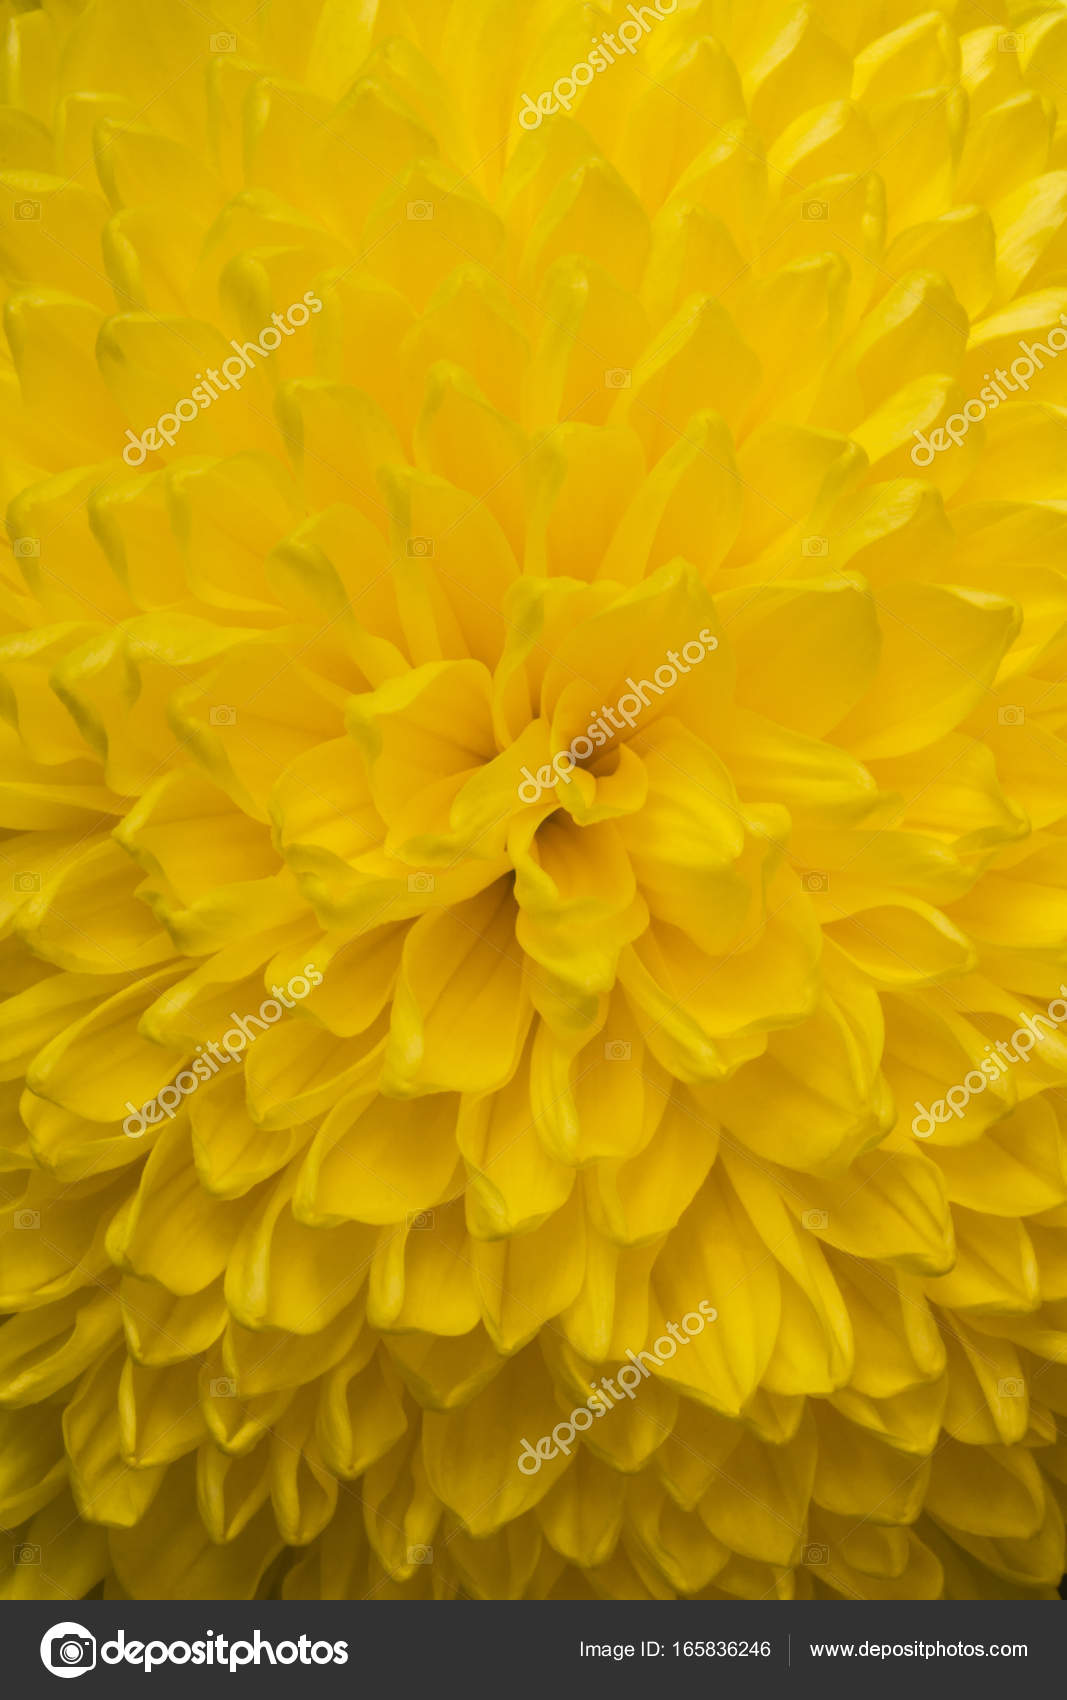 Close Up Of Yellow Aster Flower Aster With Yellow Petals And